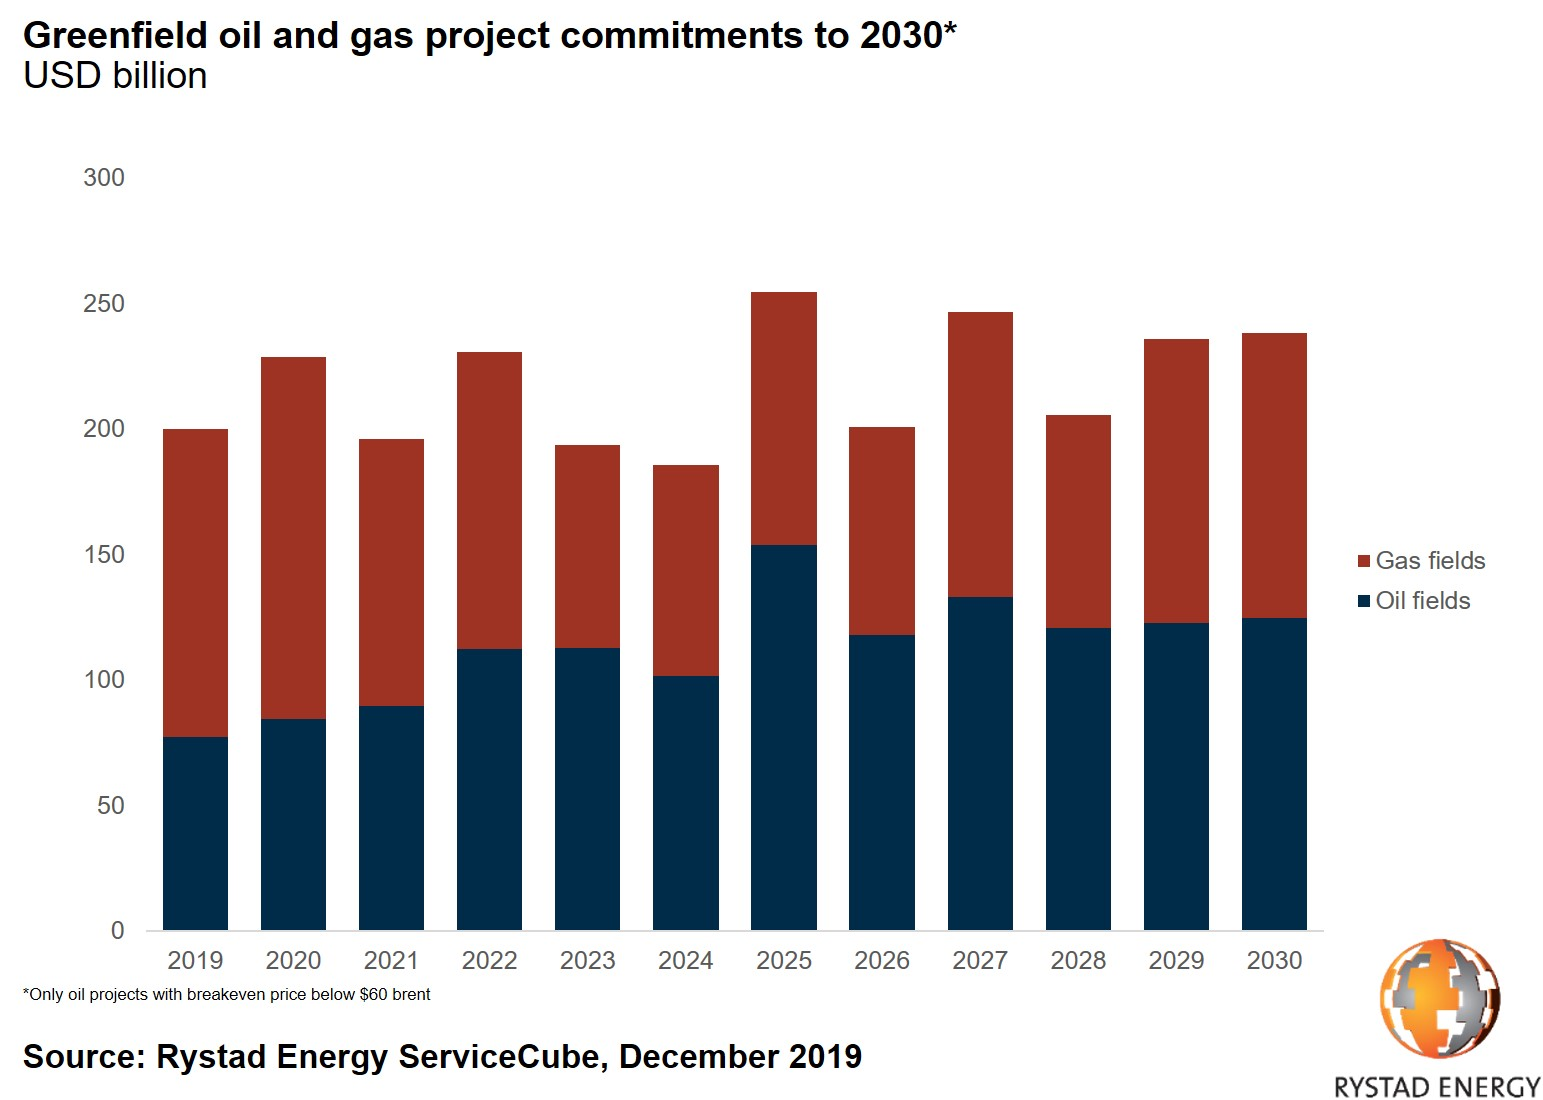 Greenfield oil and gas project commitments to 2030 USD billion only oil projects with breakeven price below $60 brent Rystad Energy ServiceCube December 2019